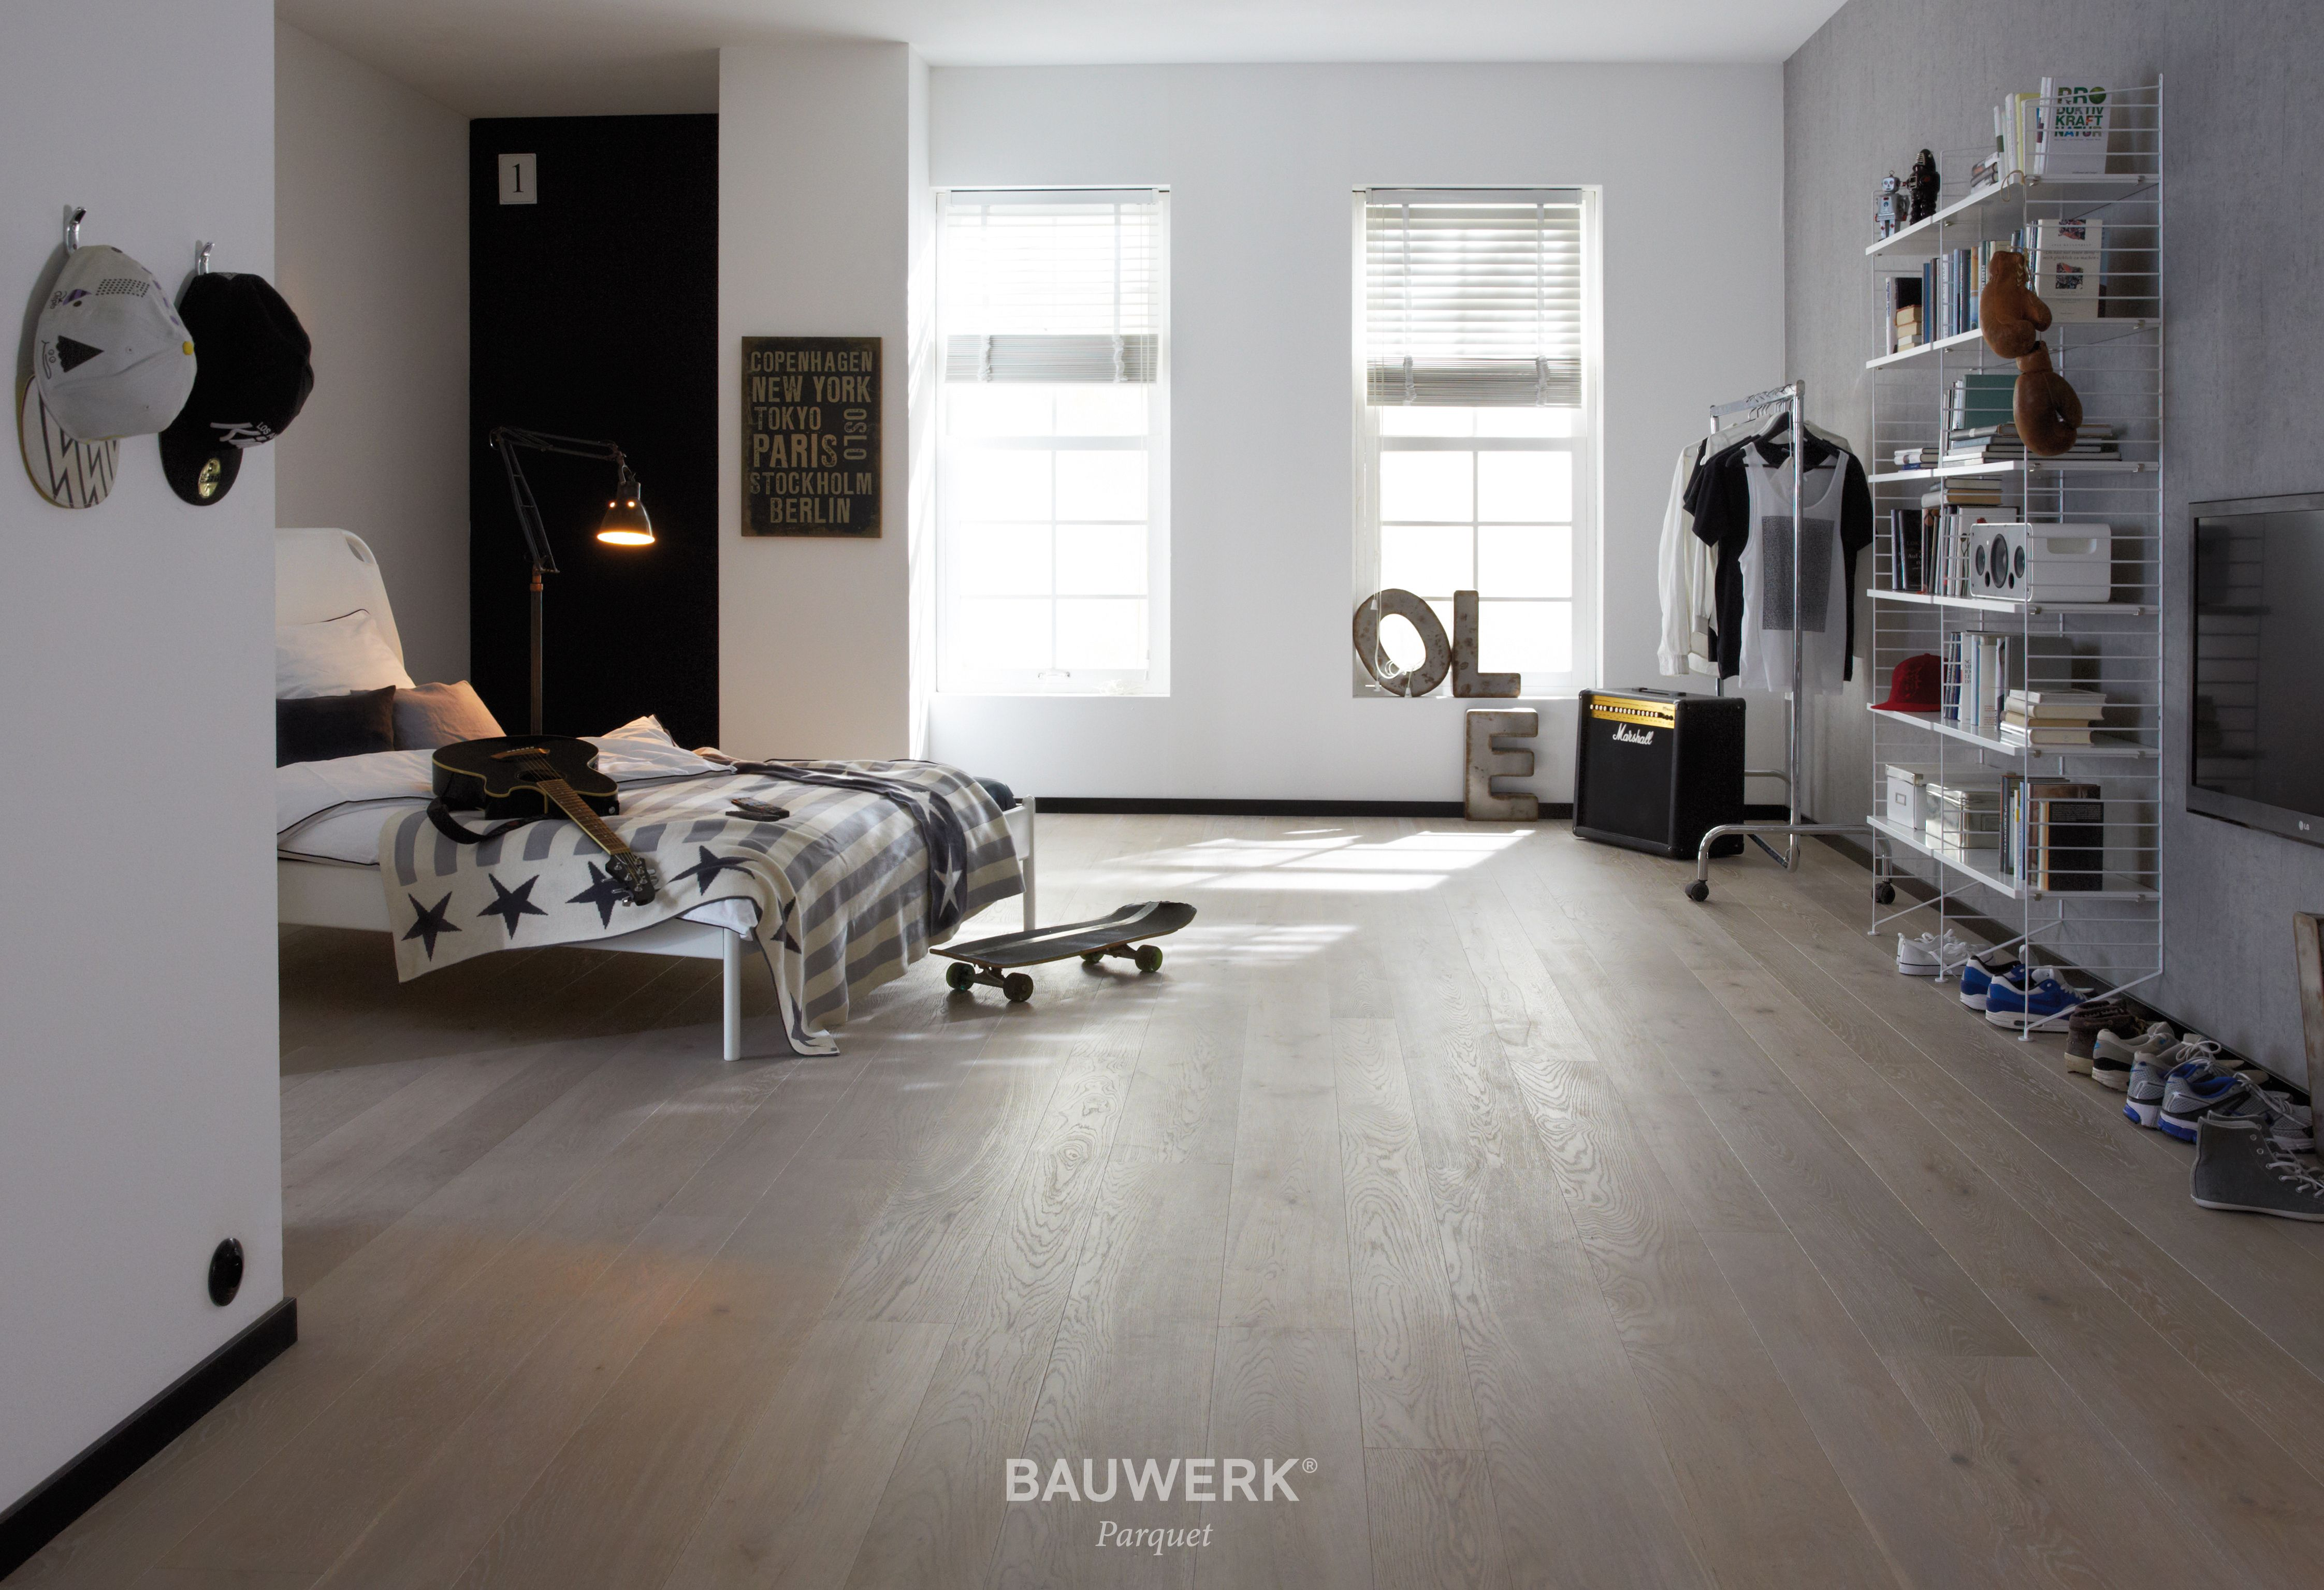 bauwerk parkett landhausdiele casapark eiche sasso. Black Bedroom Furniture Sets. Home Design Ideas